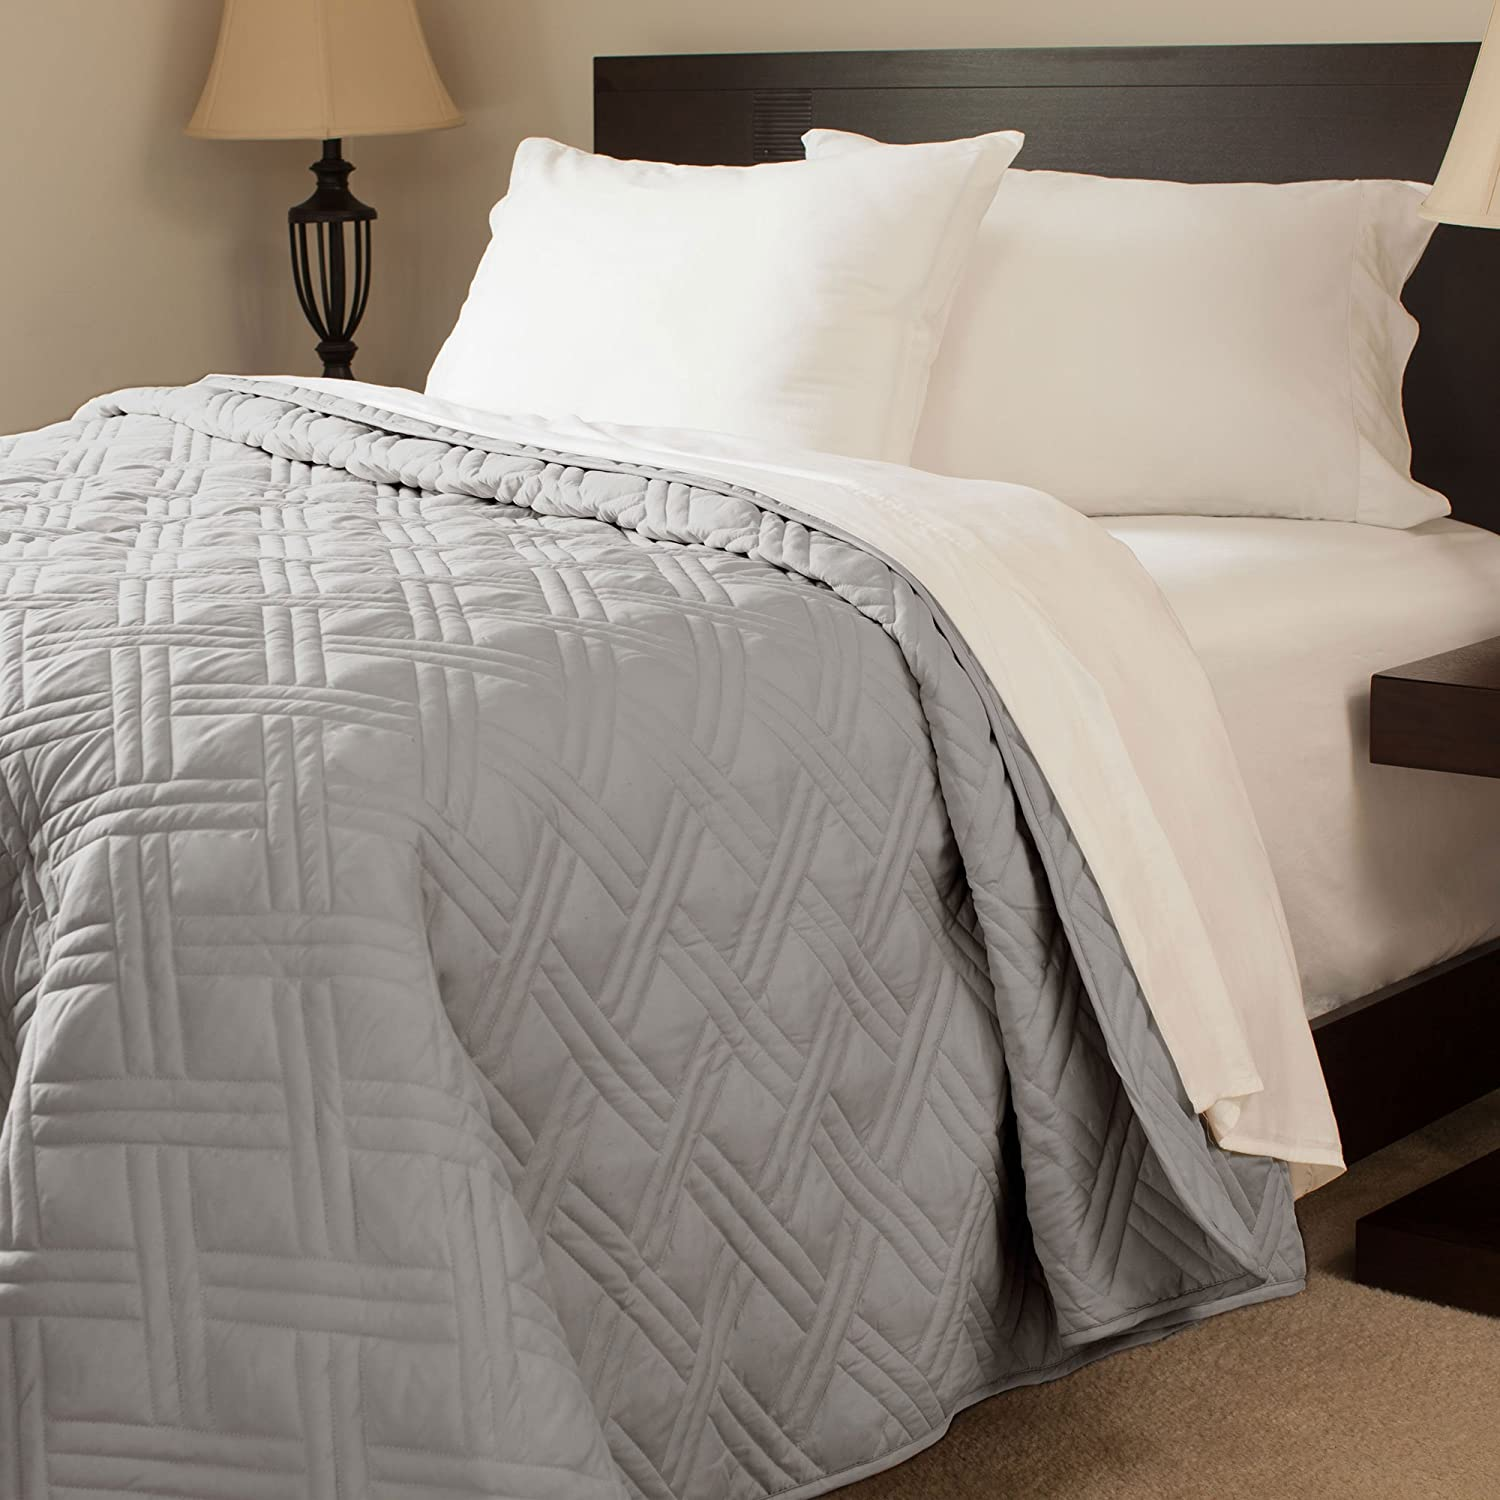 Silver Quilts And Bedding Ease Bedding With Style